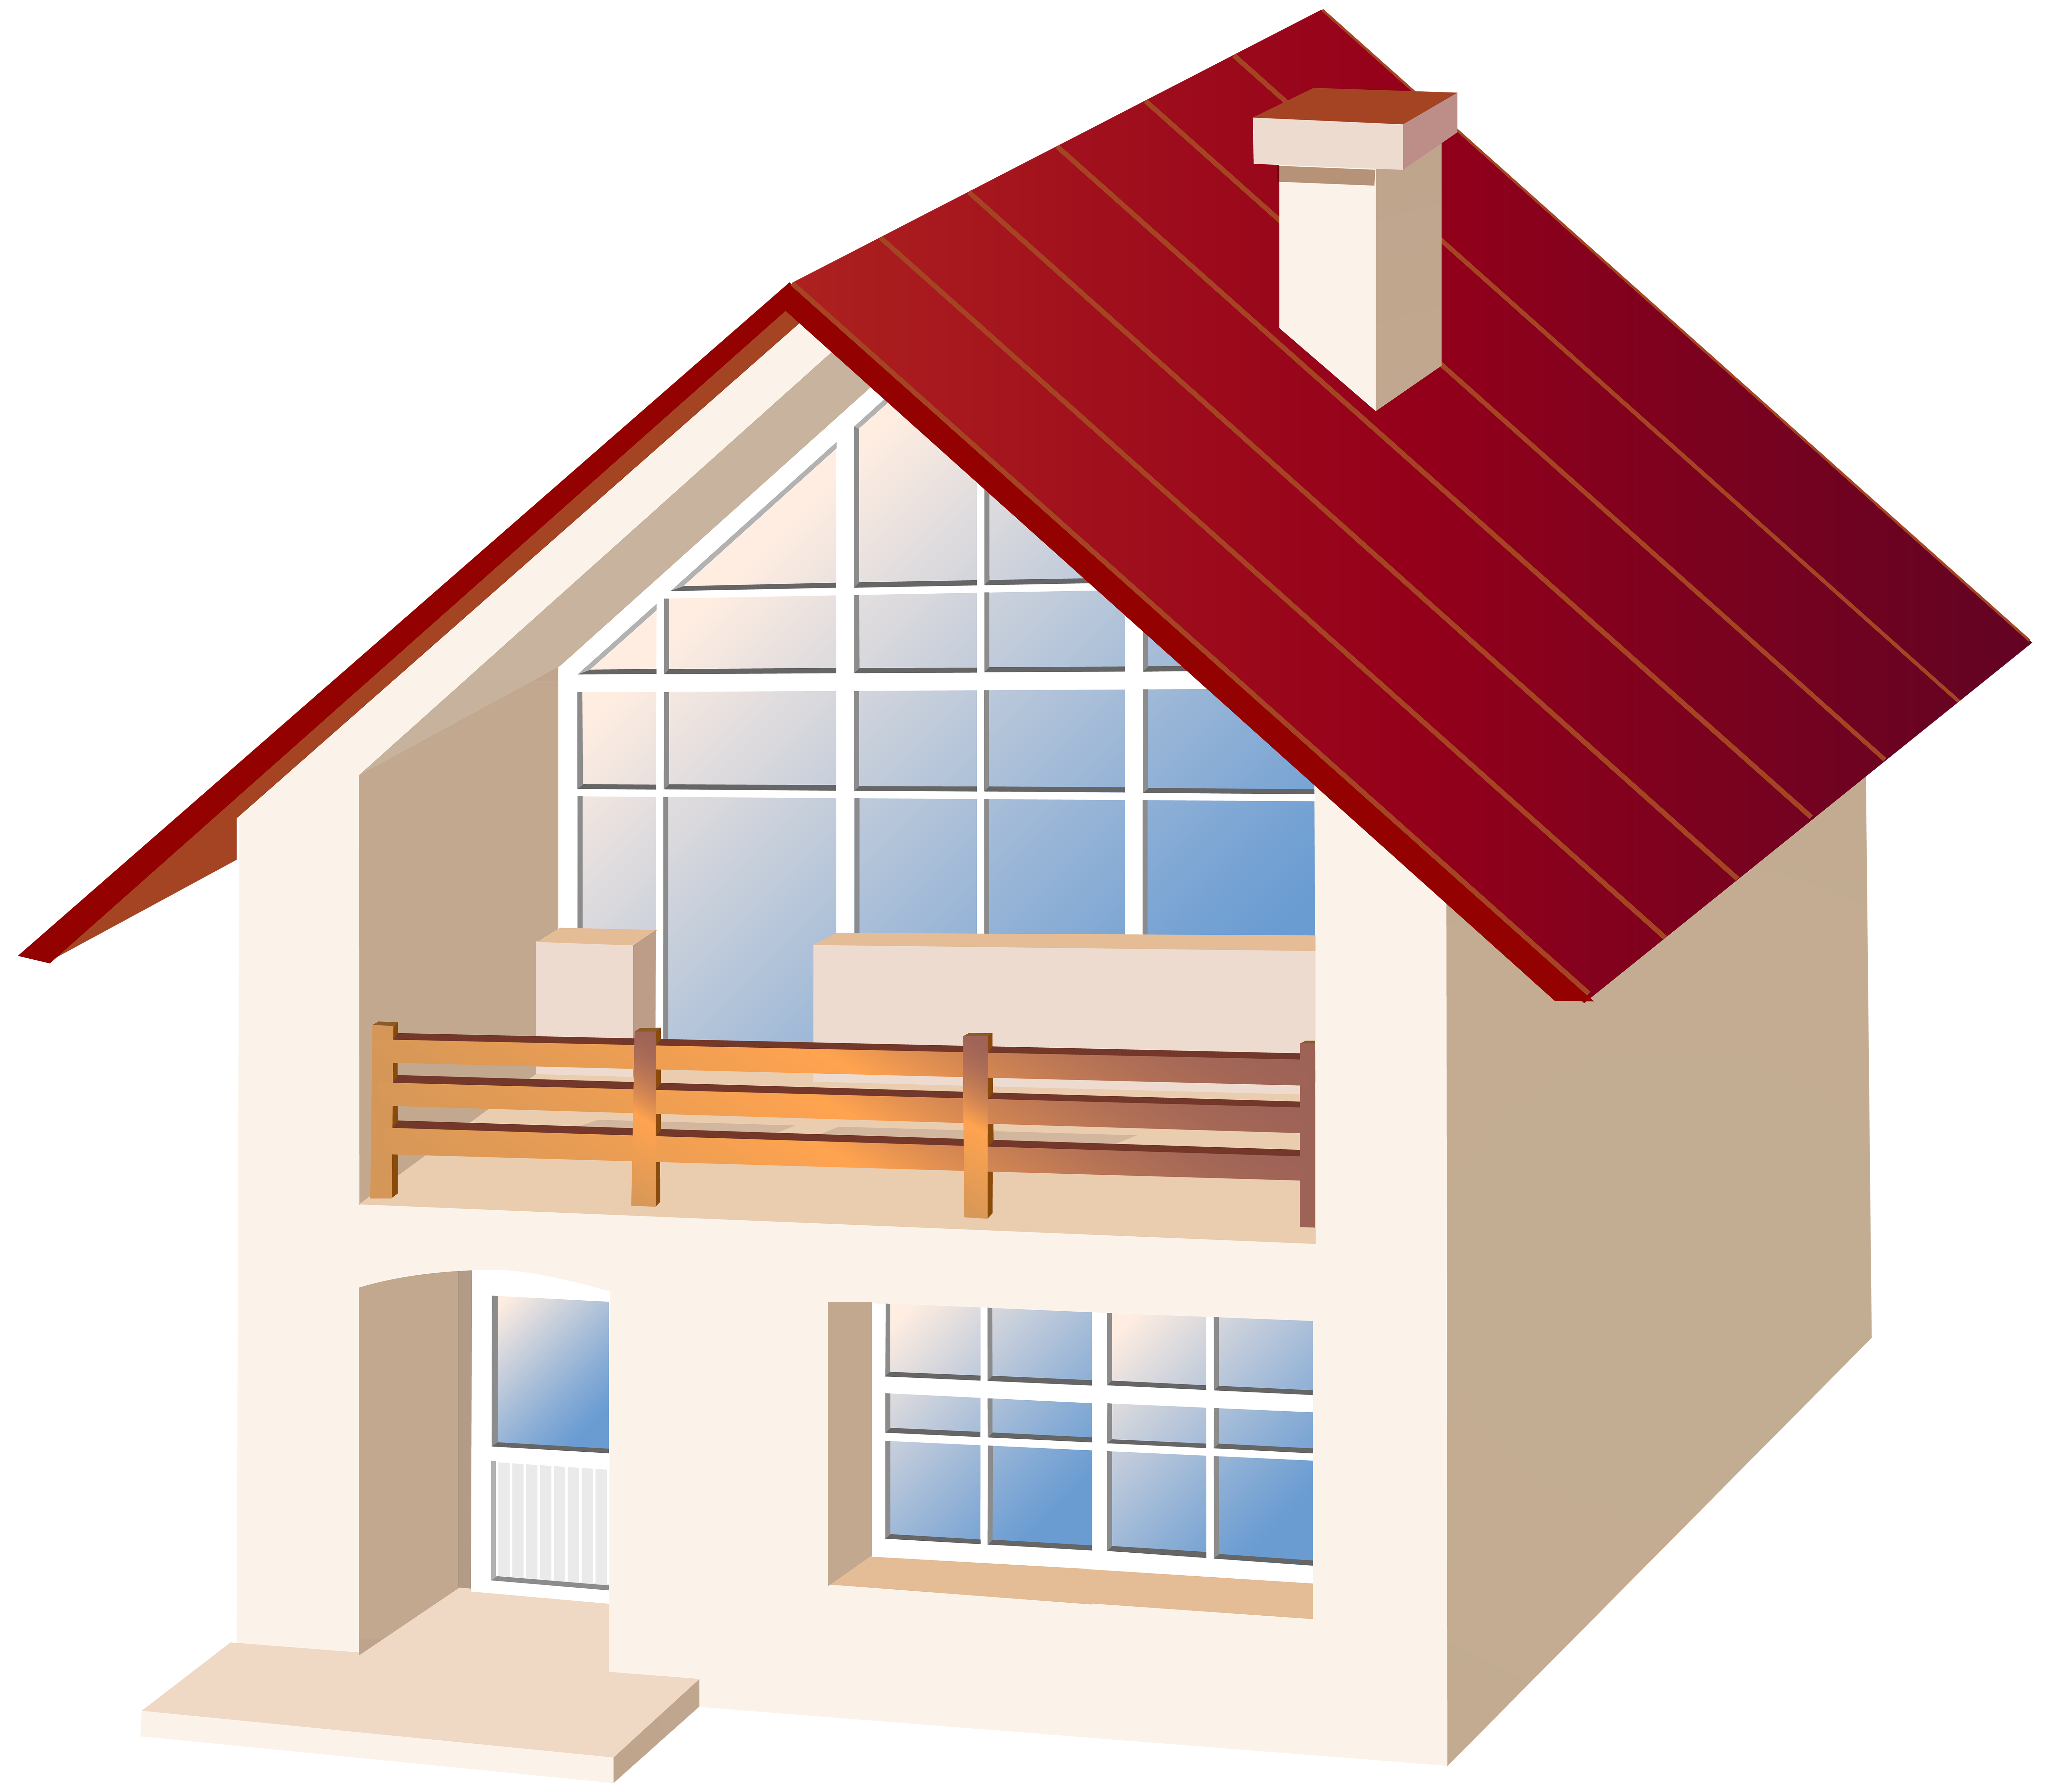 Roof of house clipart jpg freeuse library House PNG Clip Art - Best WEB Clipart jpg freeuse library